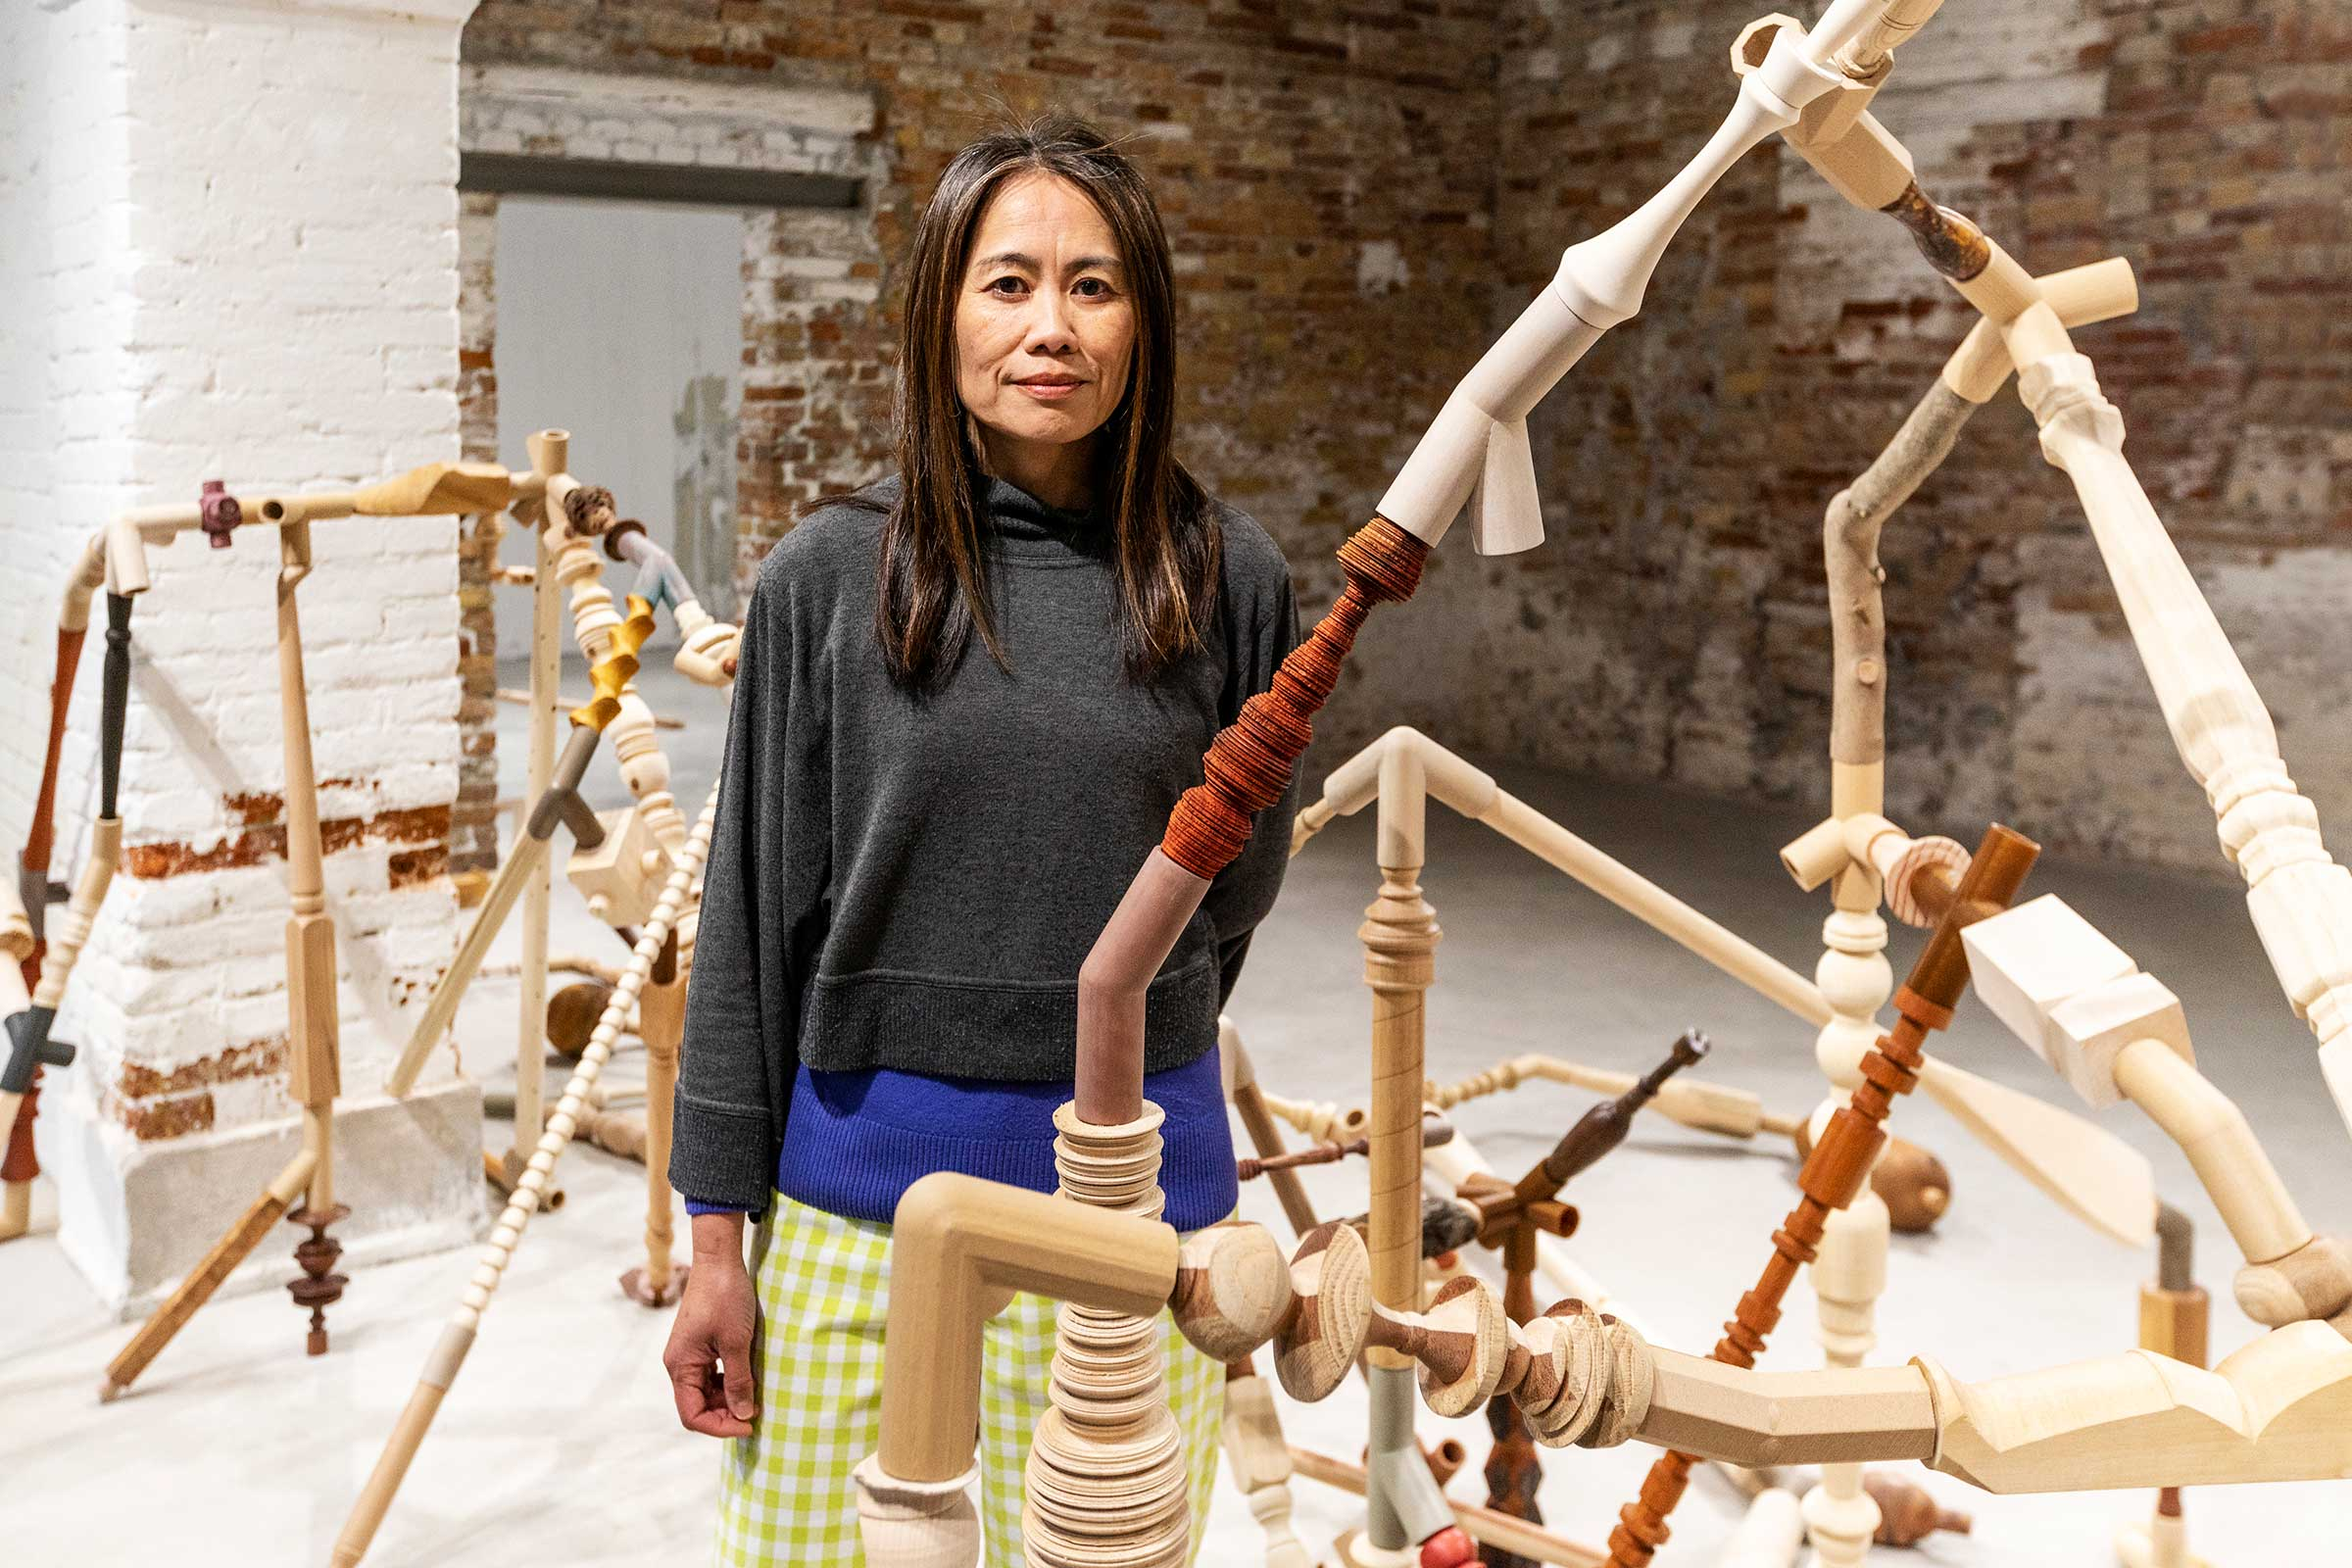 Shirley Tse with  Negotiated Differences  at  Shirley Tse: Stakeholders, Hong Kong in Venice , 2019. Image by Ela Bialkowska, OKNOstudio. Courtesy of M+ and the artist